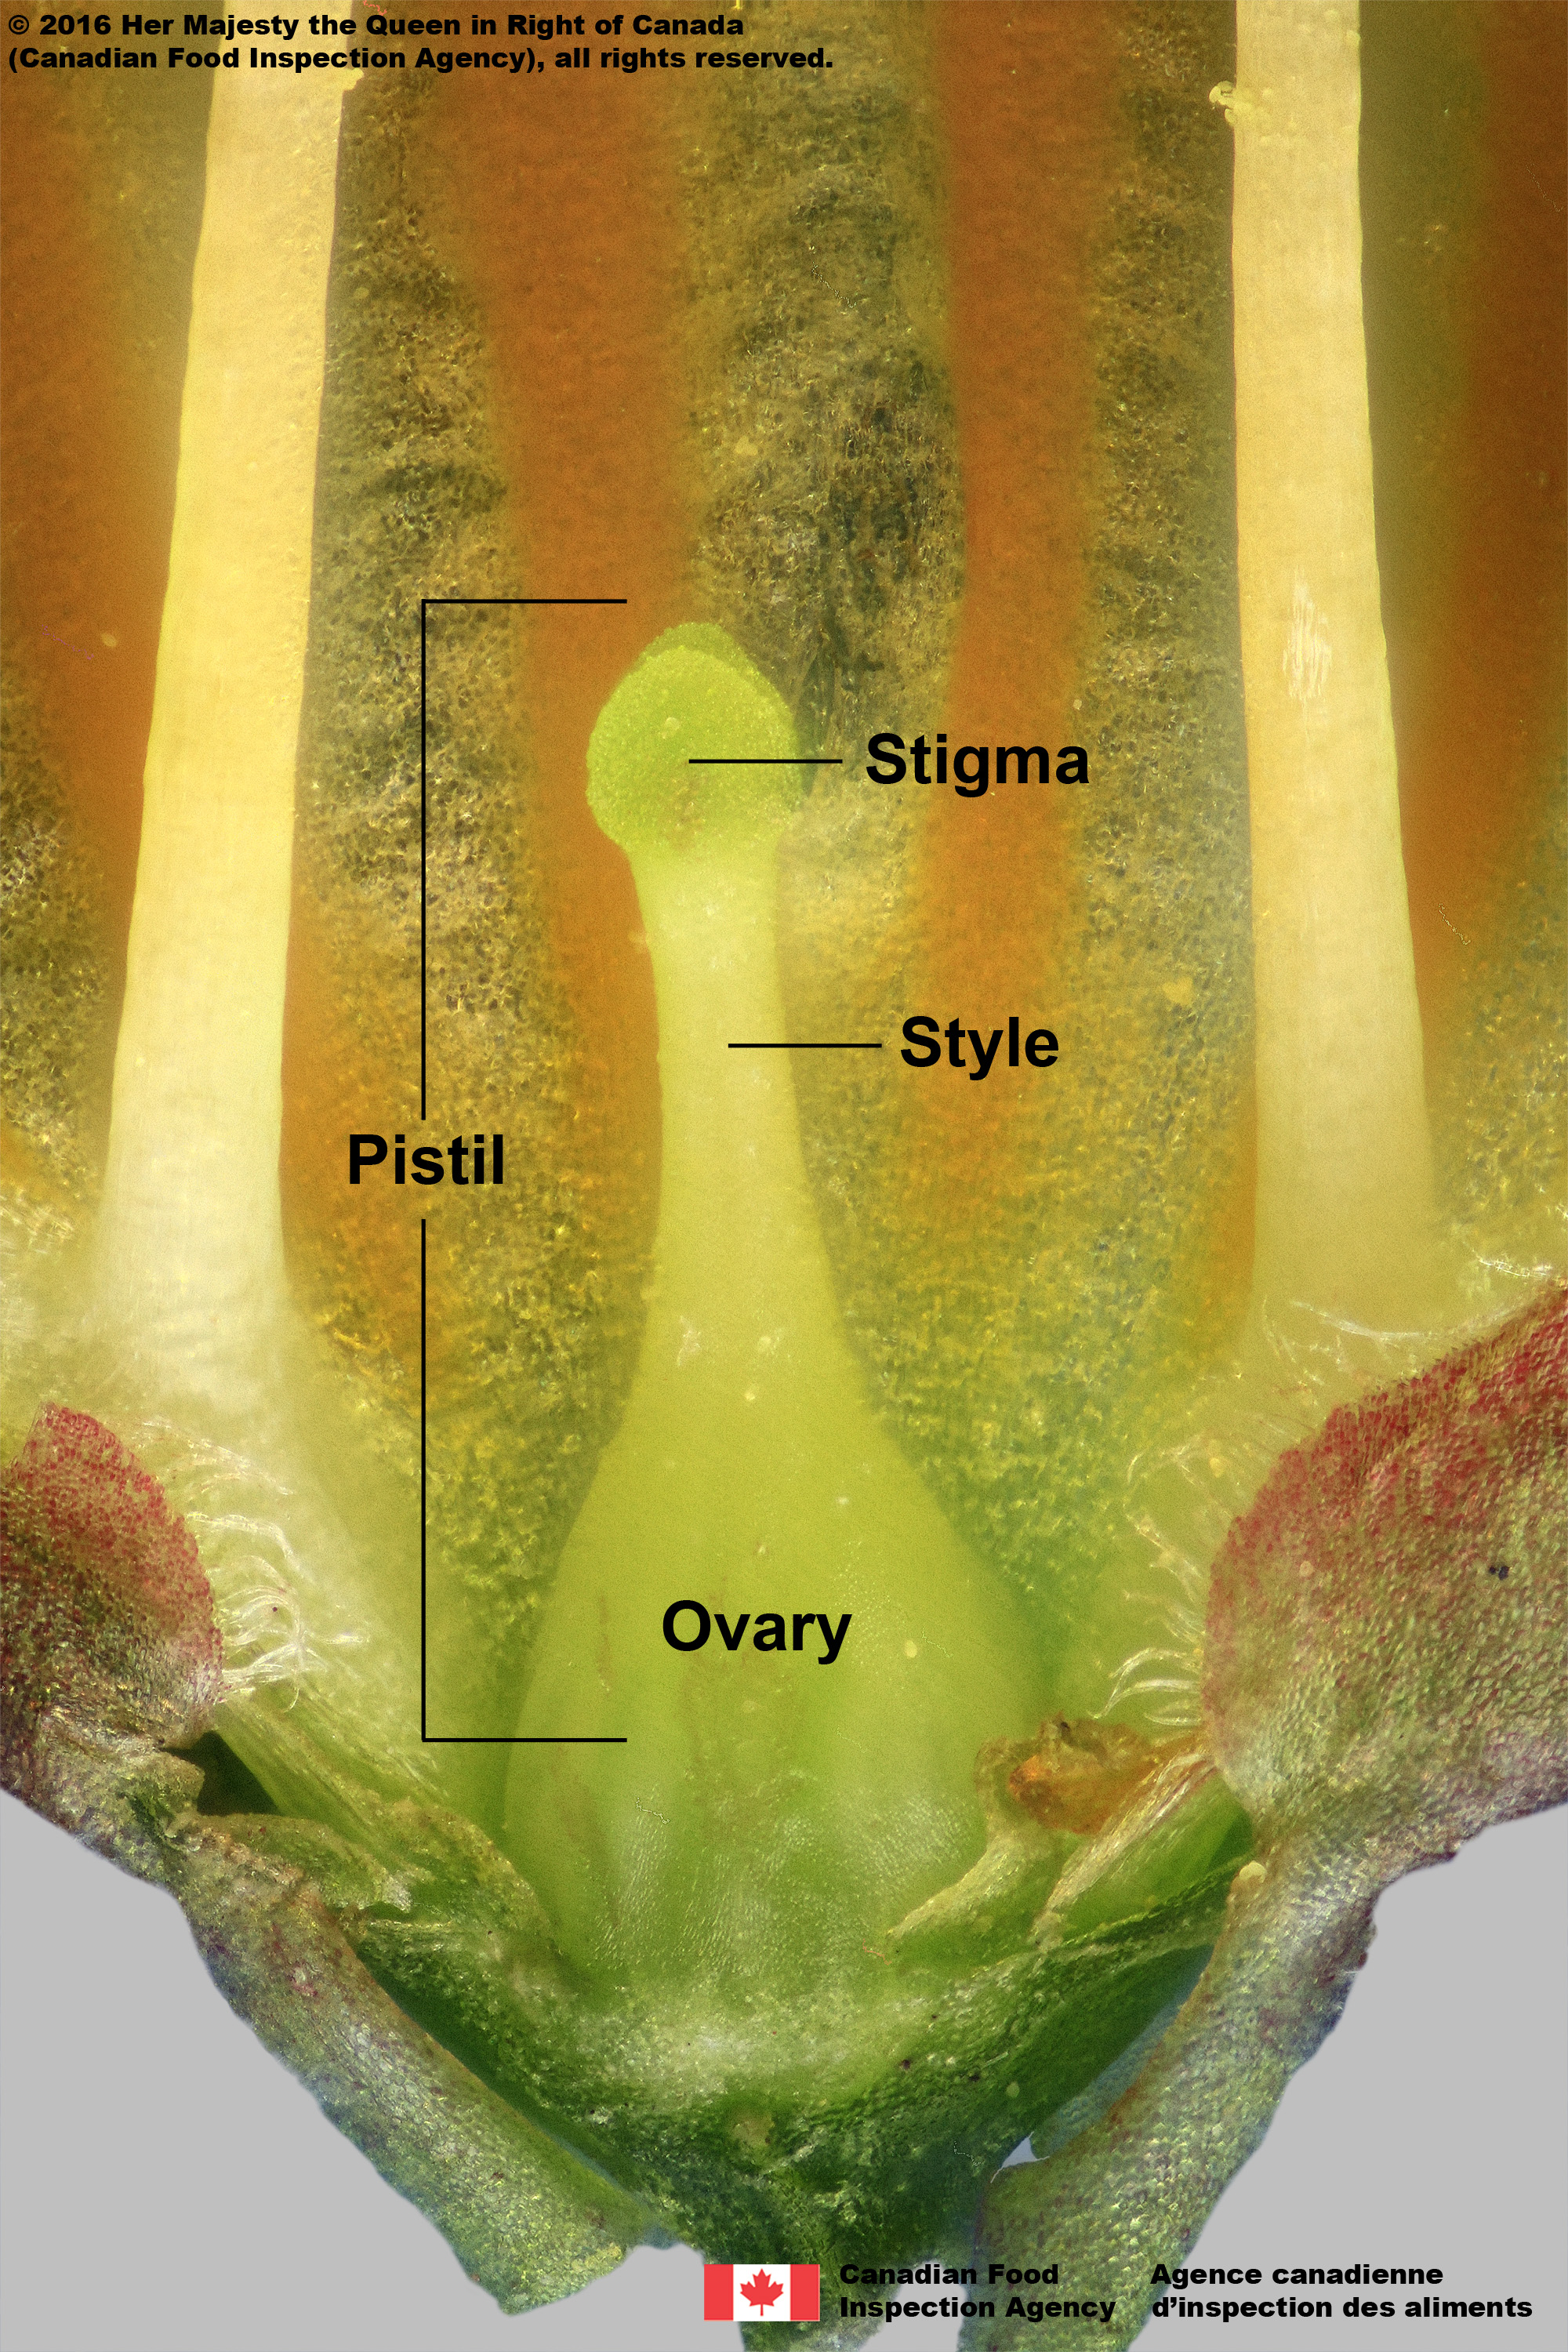 style_and_ovary_annotated1_PISTIL_LEFT.jpg